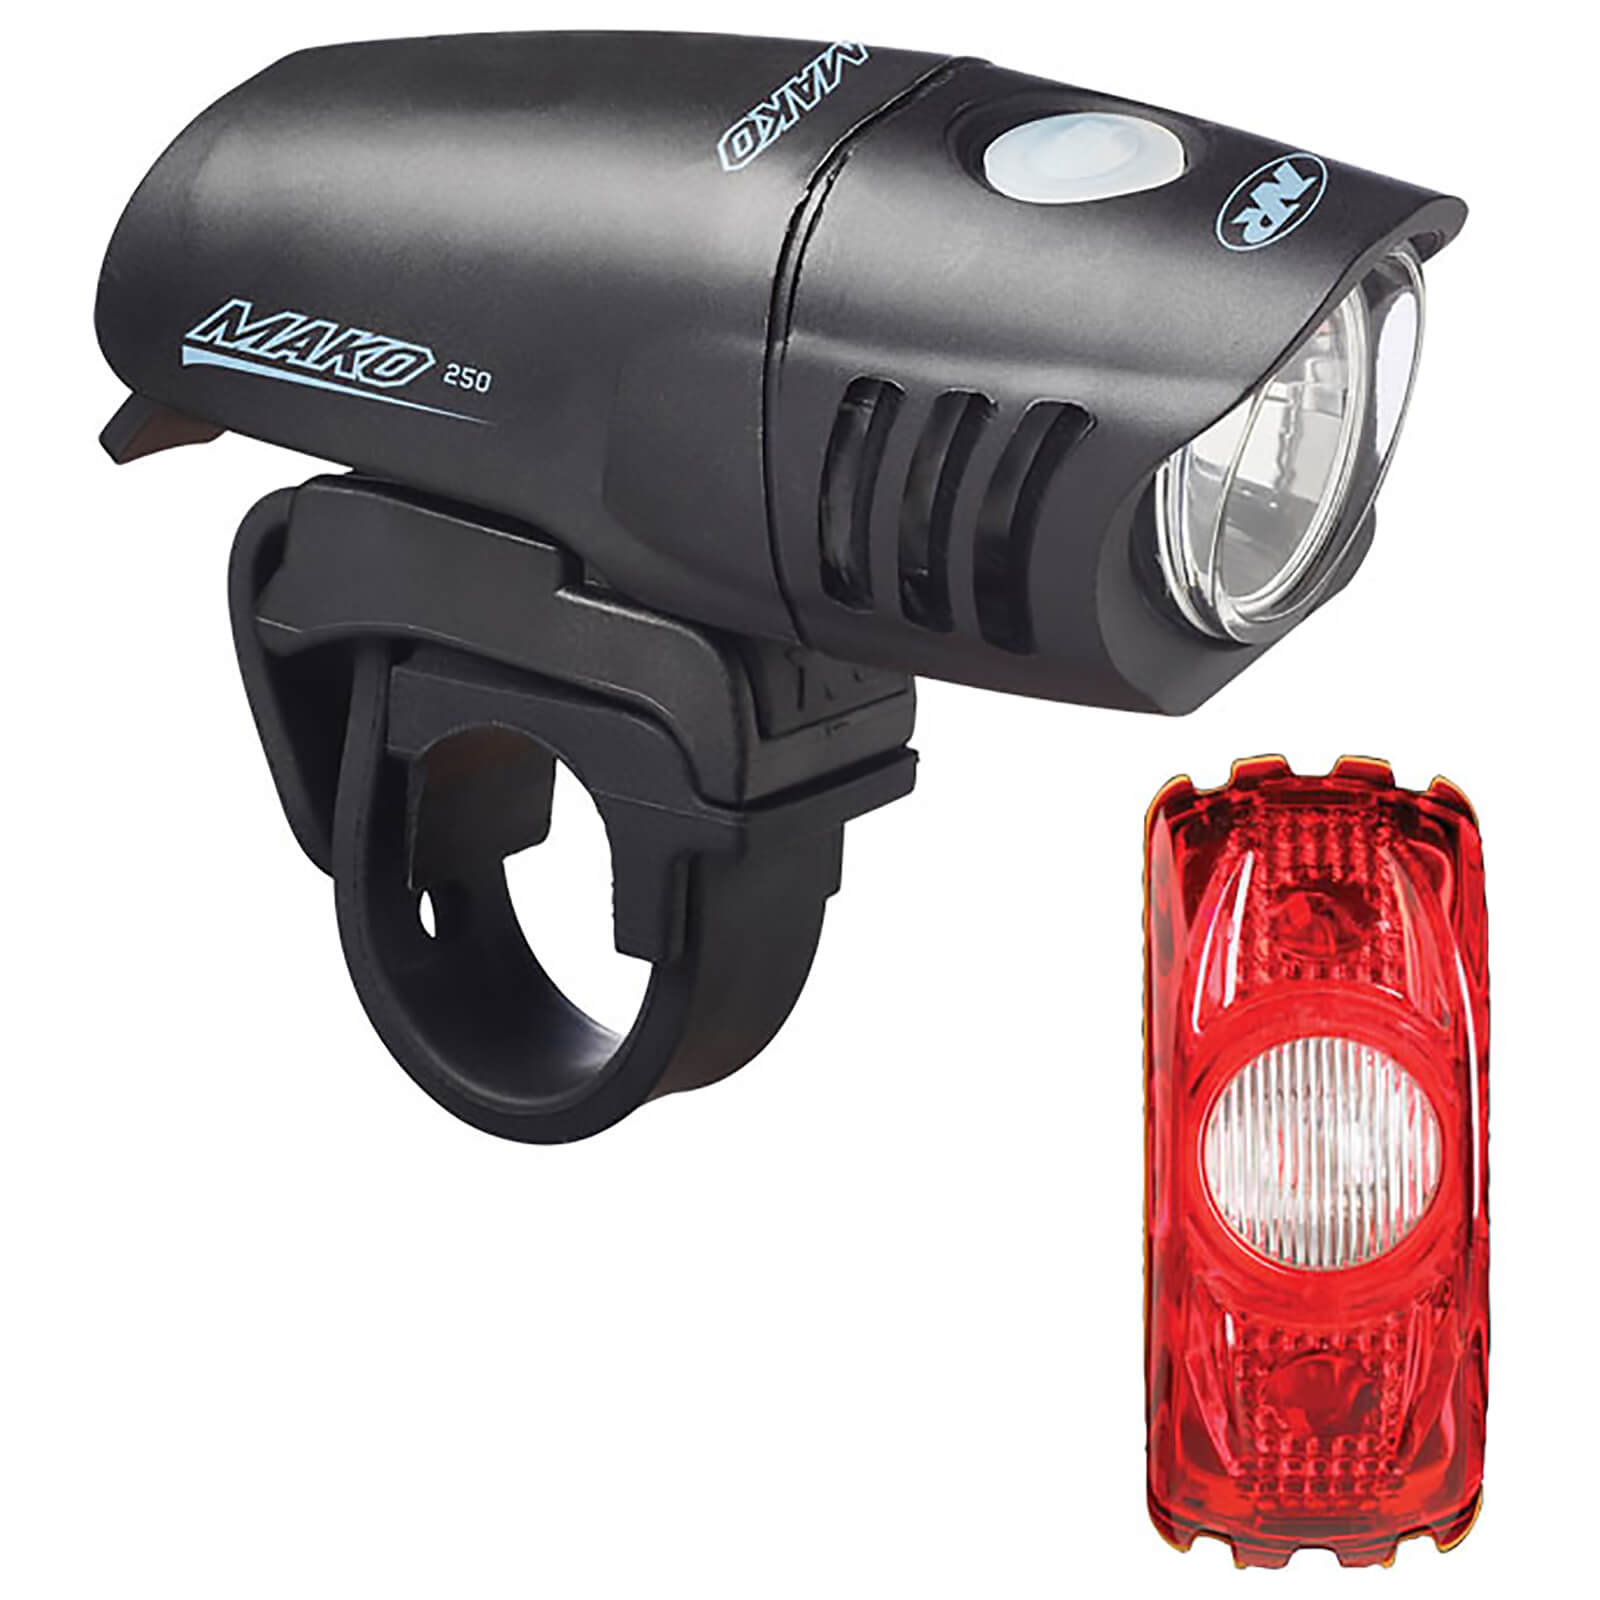 Niterider Mako 250 Front and CherryBomb 35 Rear Light Set